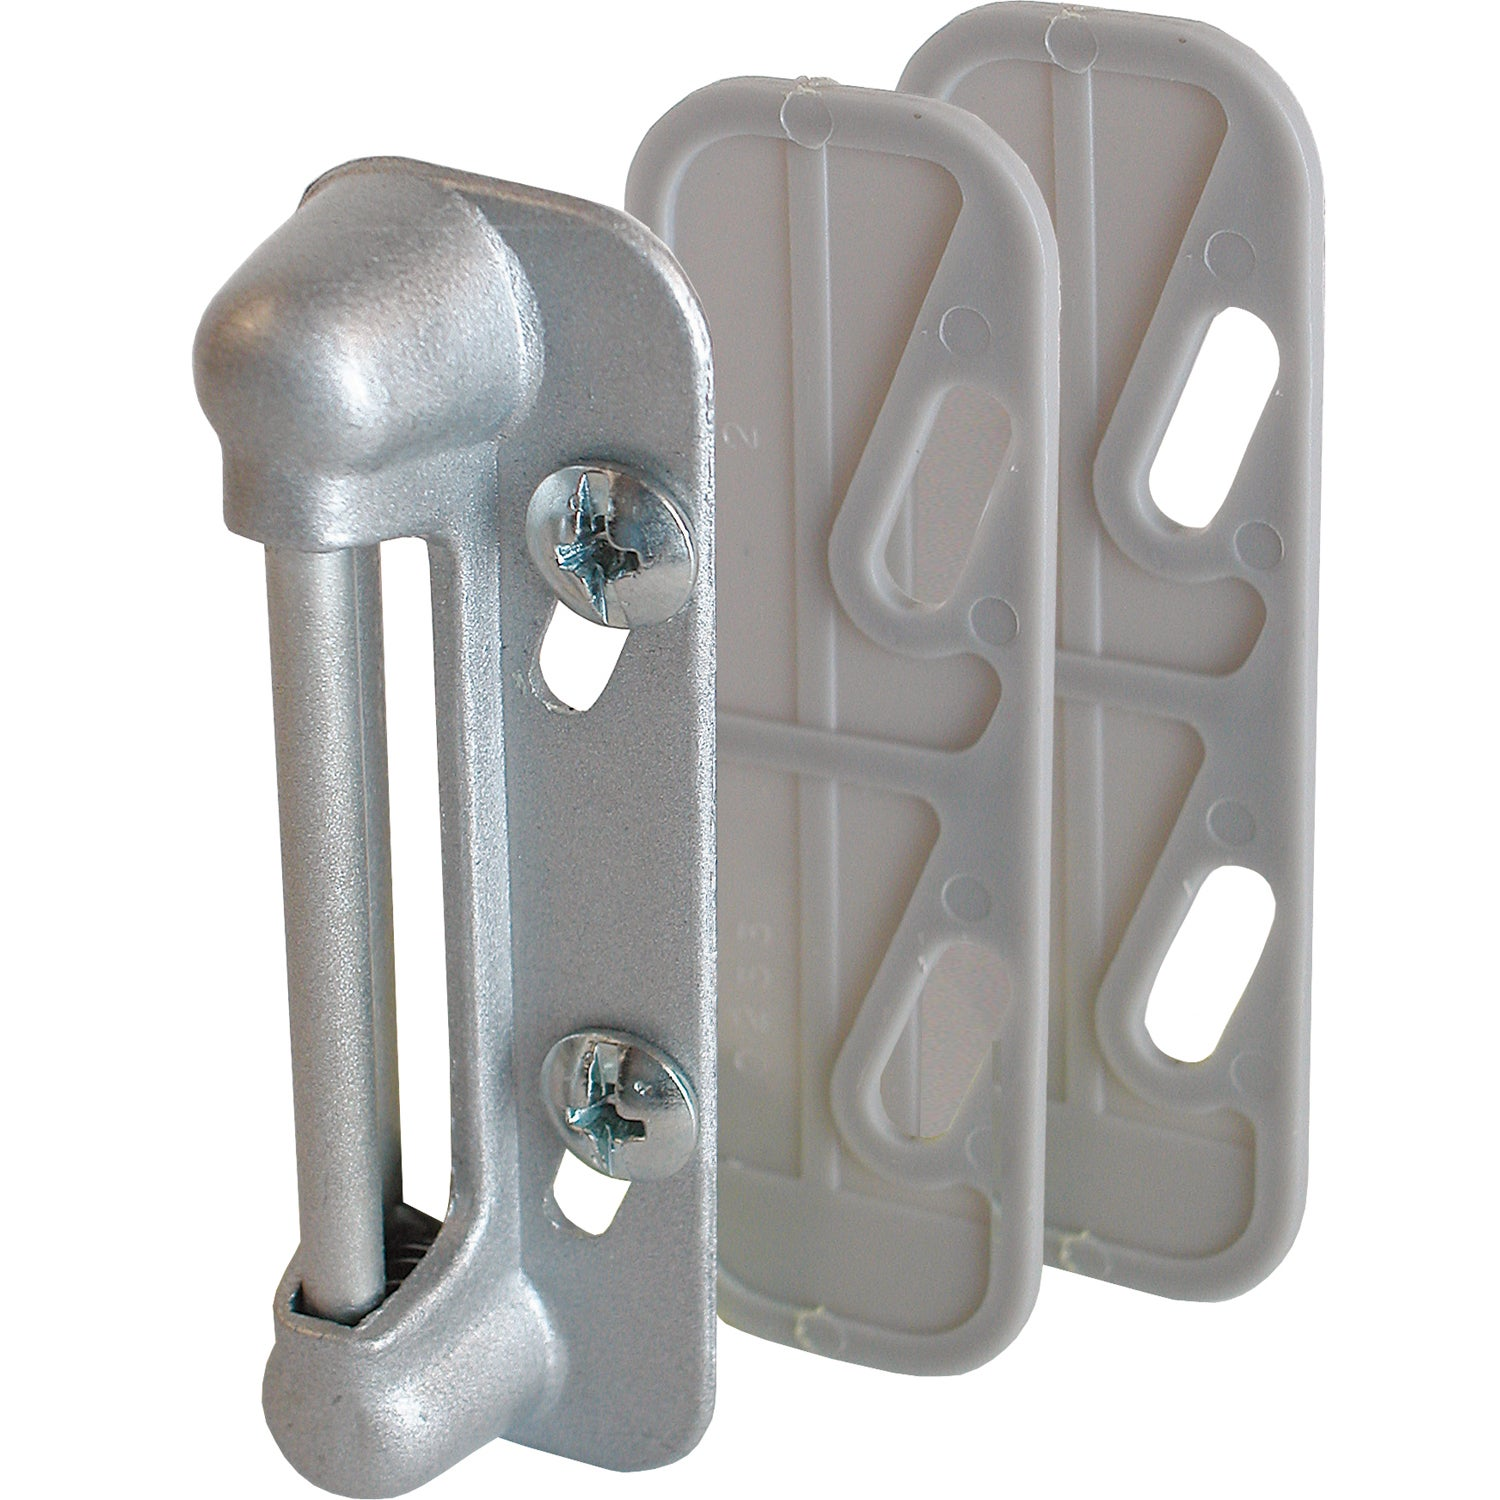 Natural Finish 20 pcs Flare in Style Retractable Captive Panel Fasteners #8-32 X 0.44 Slotted Drive THK=0.250